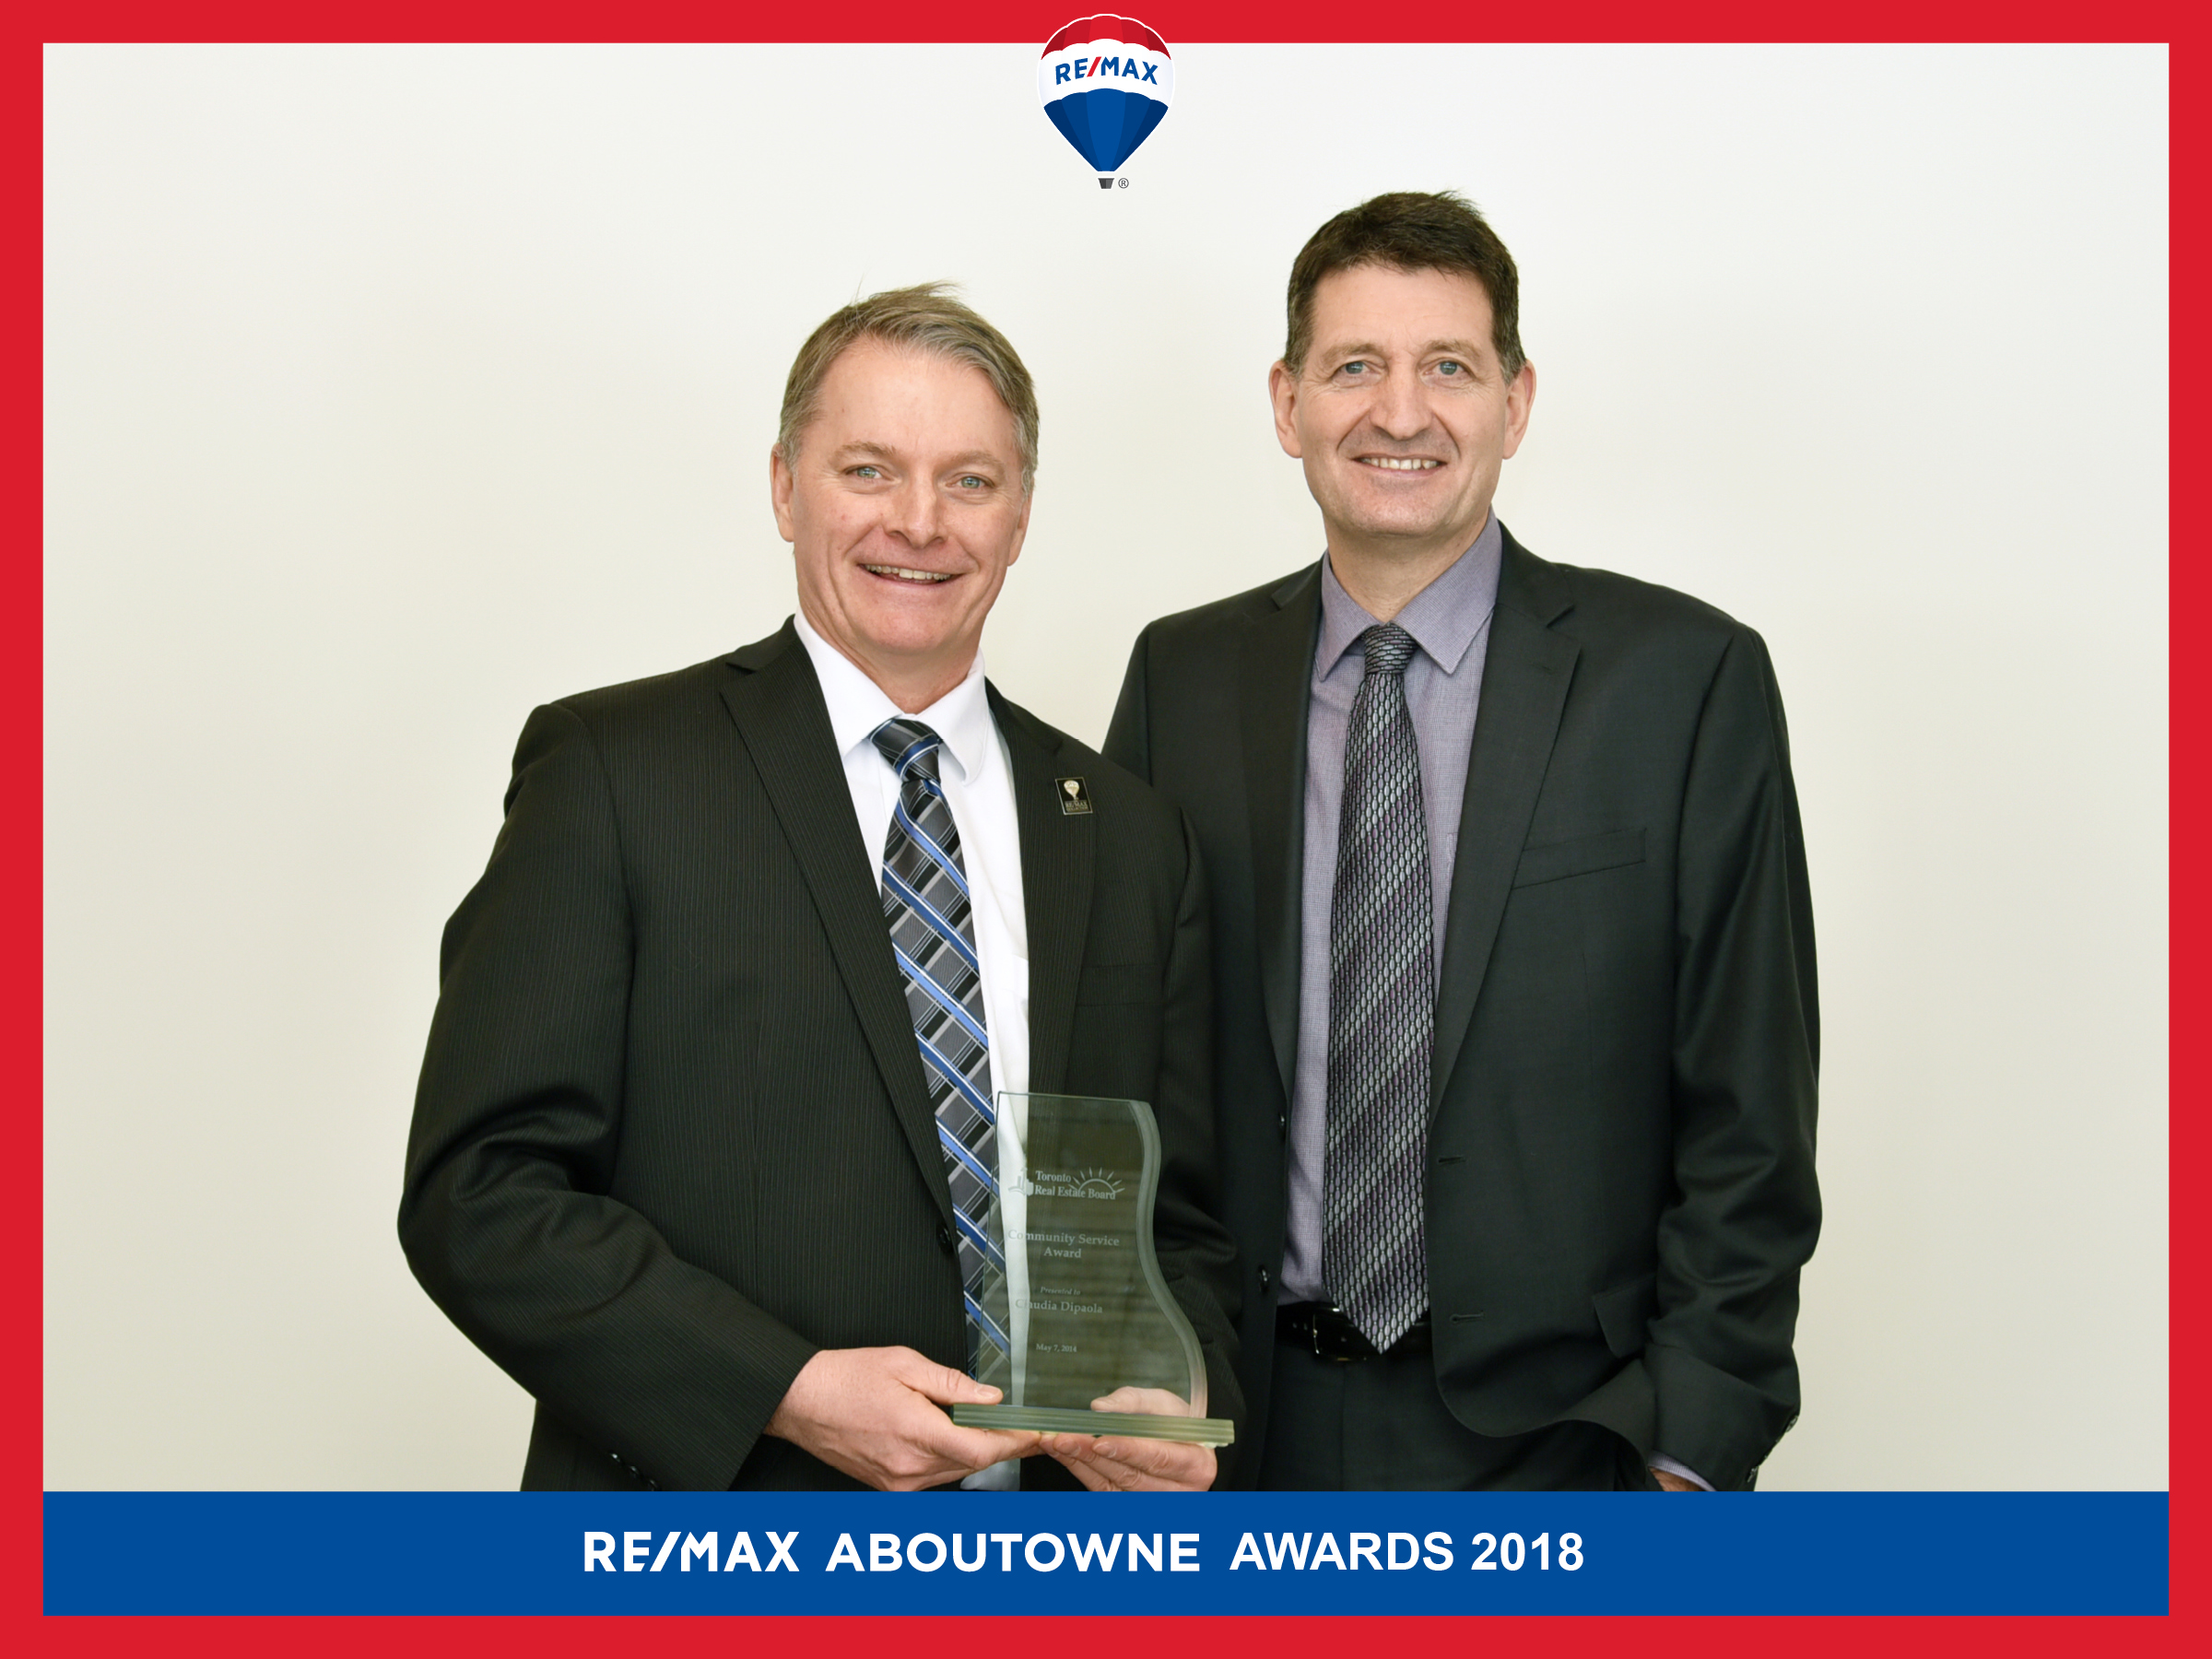 Re/max Hall of Fame Award, 2018 image